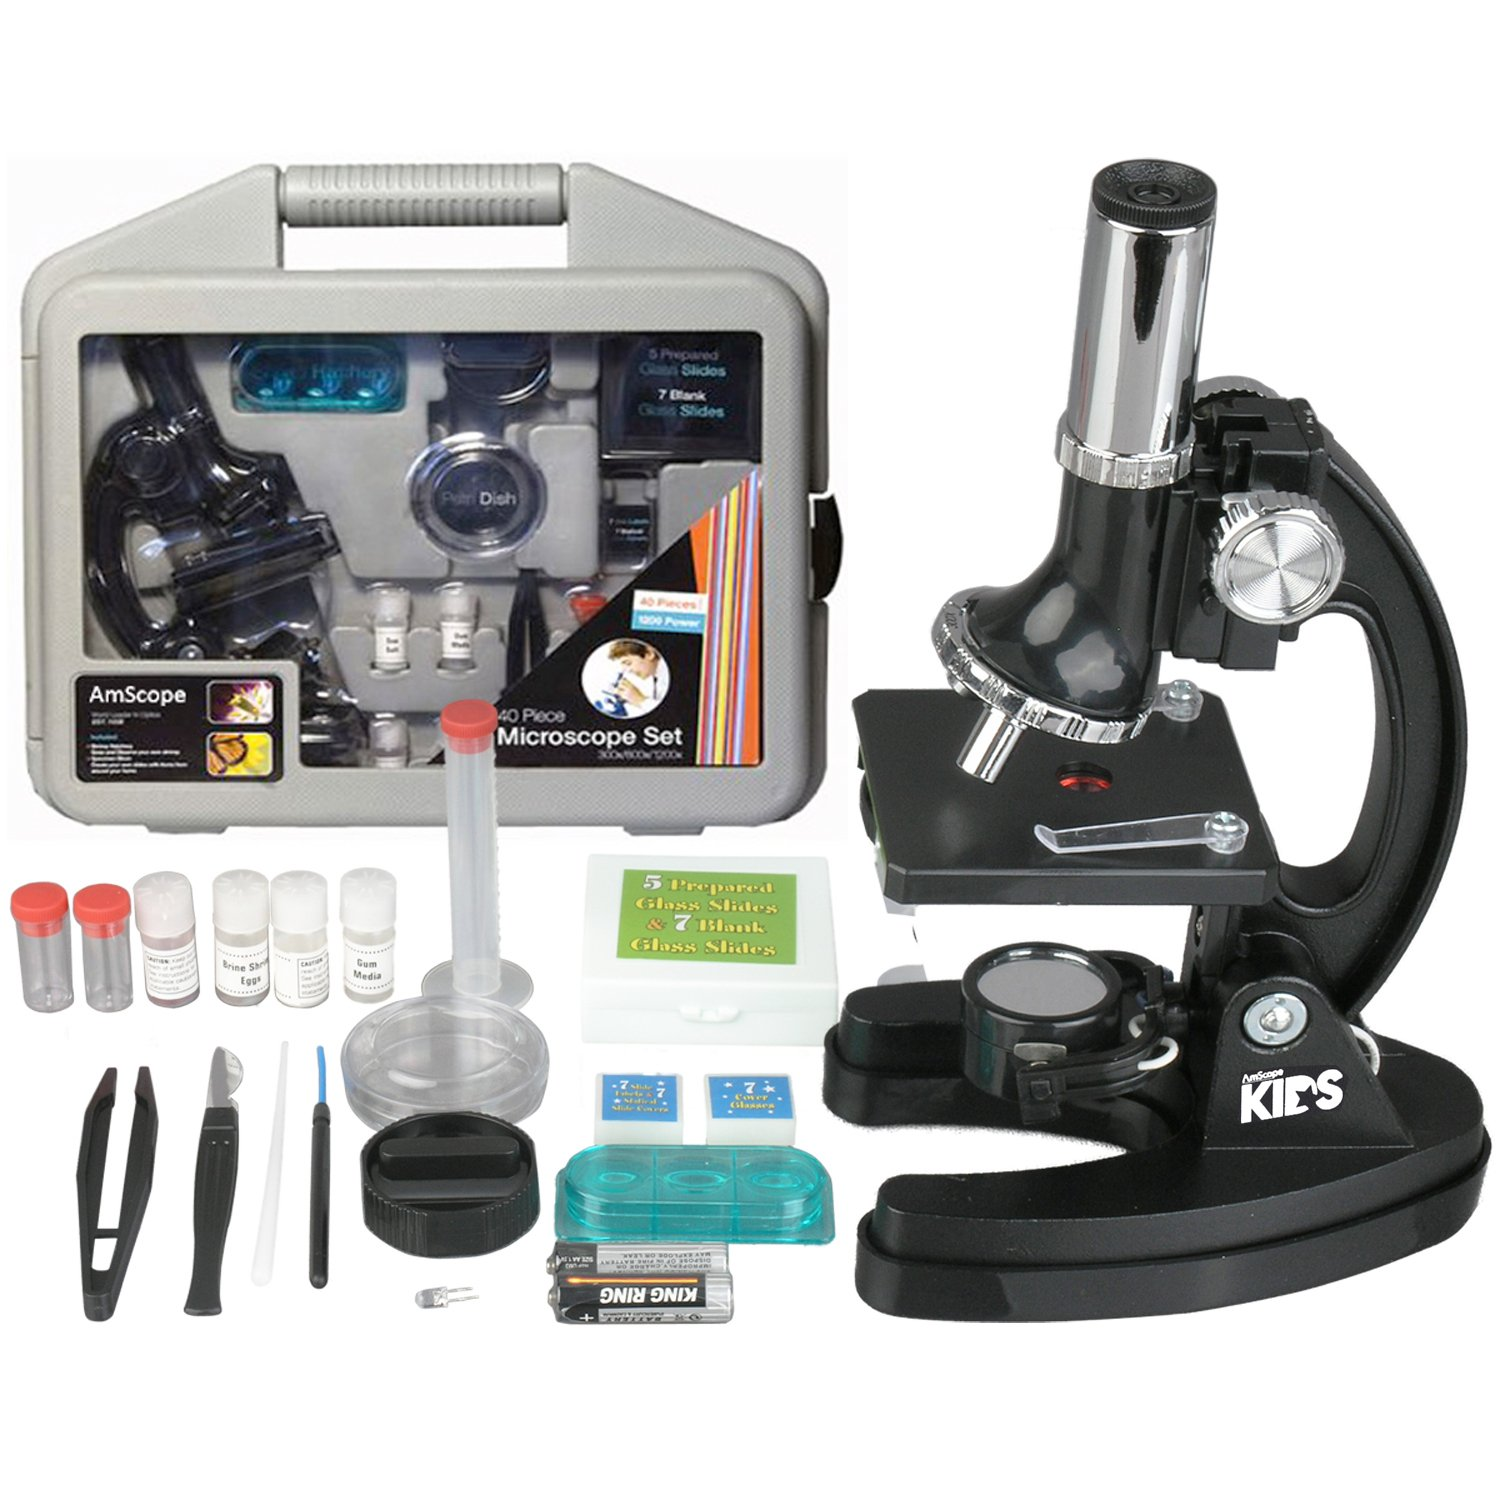 AMSCOPE-Kids M30-ABS-KT51 120x-1200x 6-Powers Metal Frame & Base with 52-pc Accessories, Among The TOP 3 Picks of The Best Student Beginner Microscope Kit in 2016, Recommended by Multi Organizations by AmScope